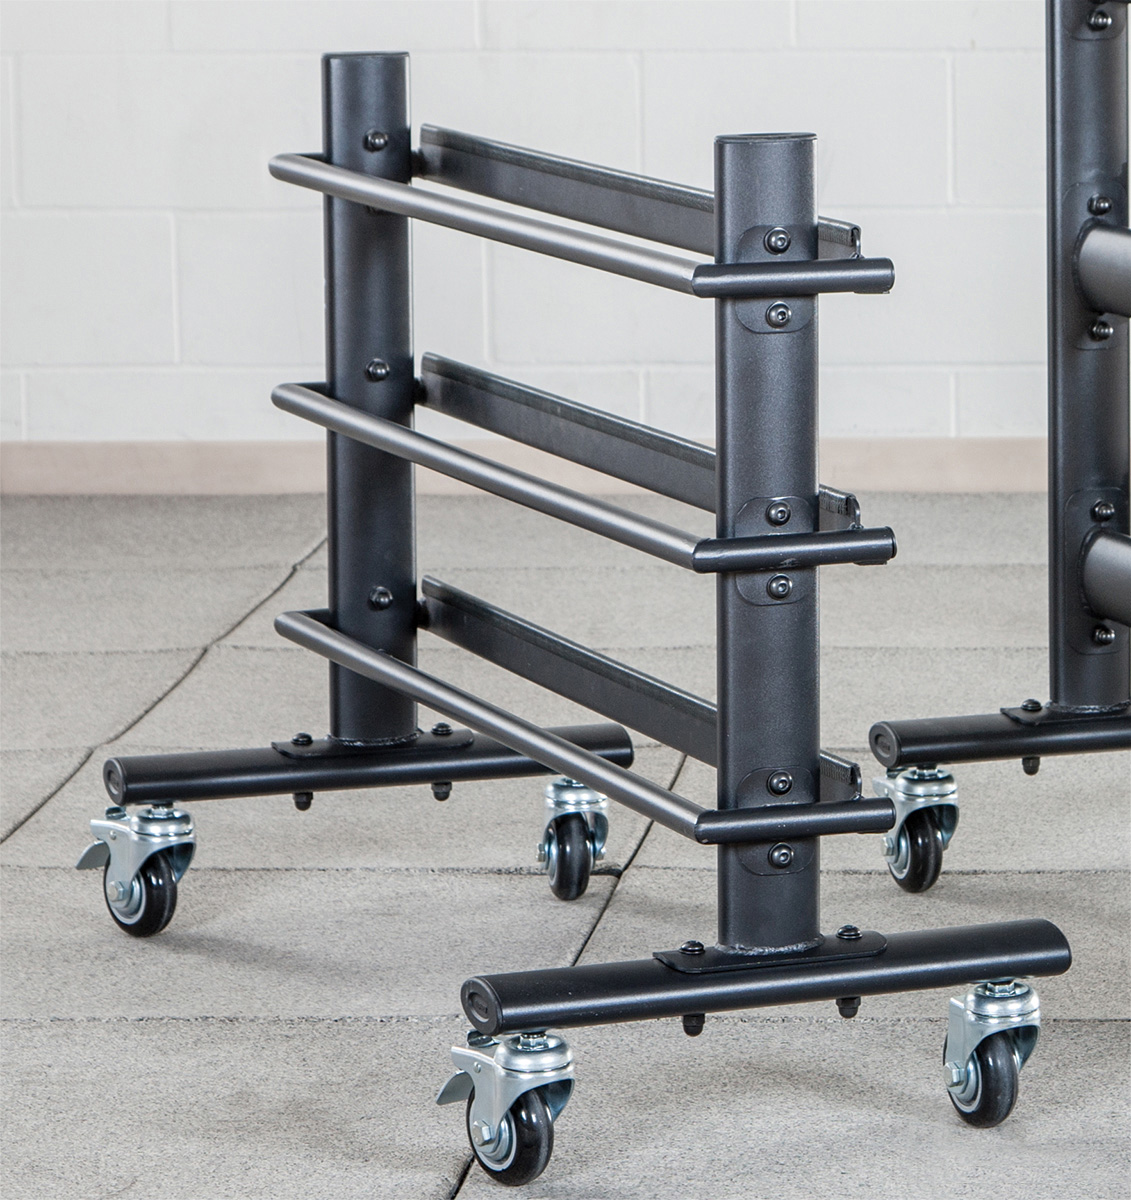 UltraFit Compact Dumbbell Rack